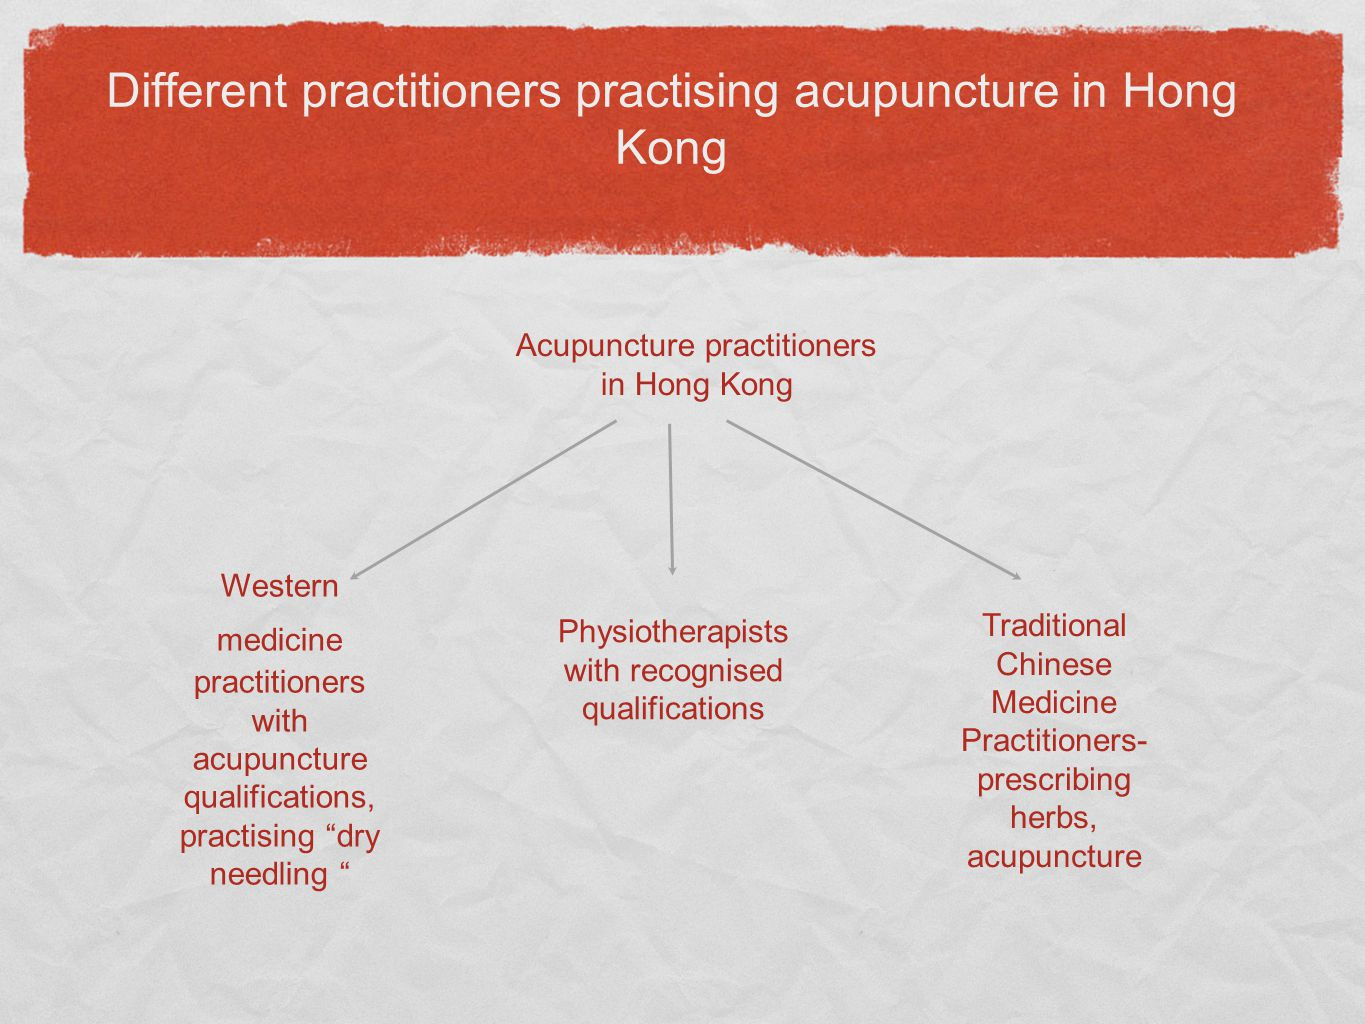 Different practitioners practising acupuncture in Hong Kong Acupuncture practitioners in Hong Kong Western medicine practitioners with acupuncture qualifications, practising dry needling Physiotherapists with recognised qualifications Traditional Chinese Medicine Practitioners- prescribing herbs, acupuncture